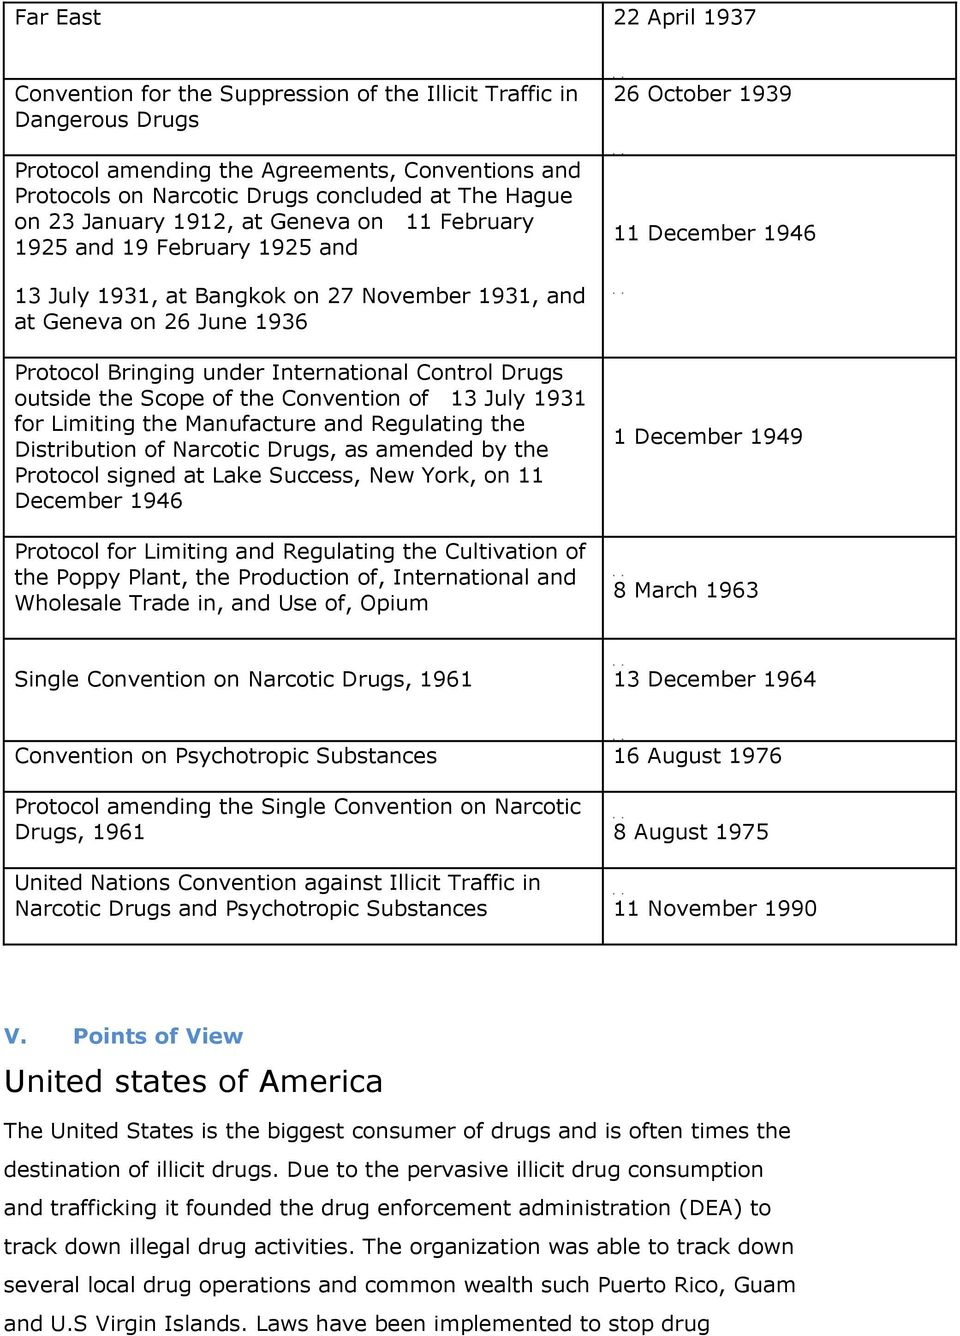 under International Control Drugs outside the Scope of the Convention of 13 July 1931 for Limiting the Manufacture and Regulating the Distribution of Narcotic Drugs, as amended by the Protocol signed